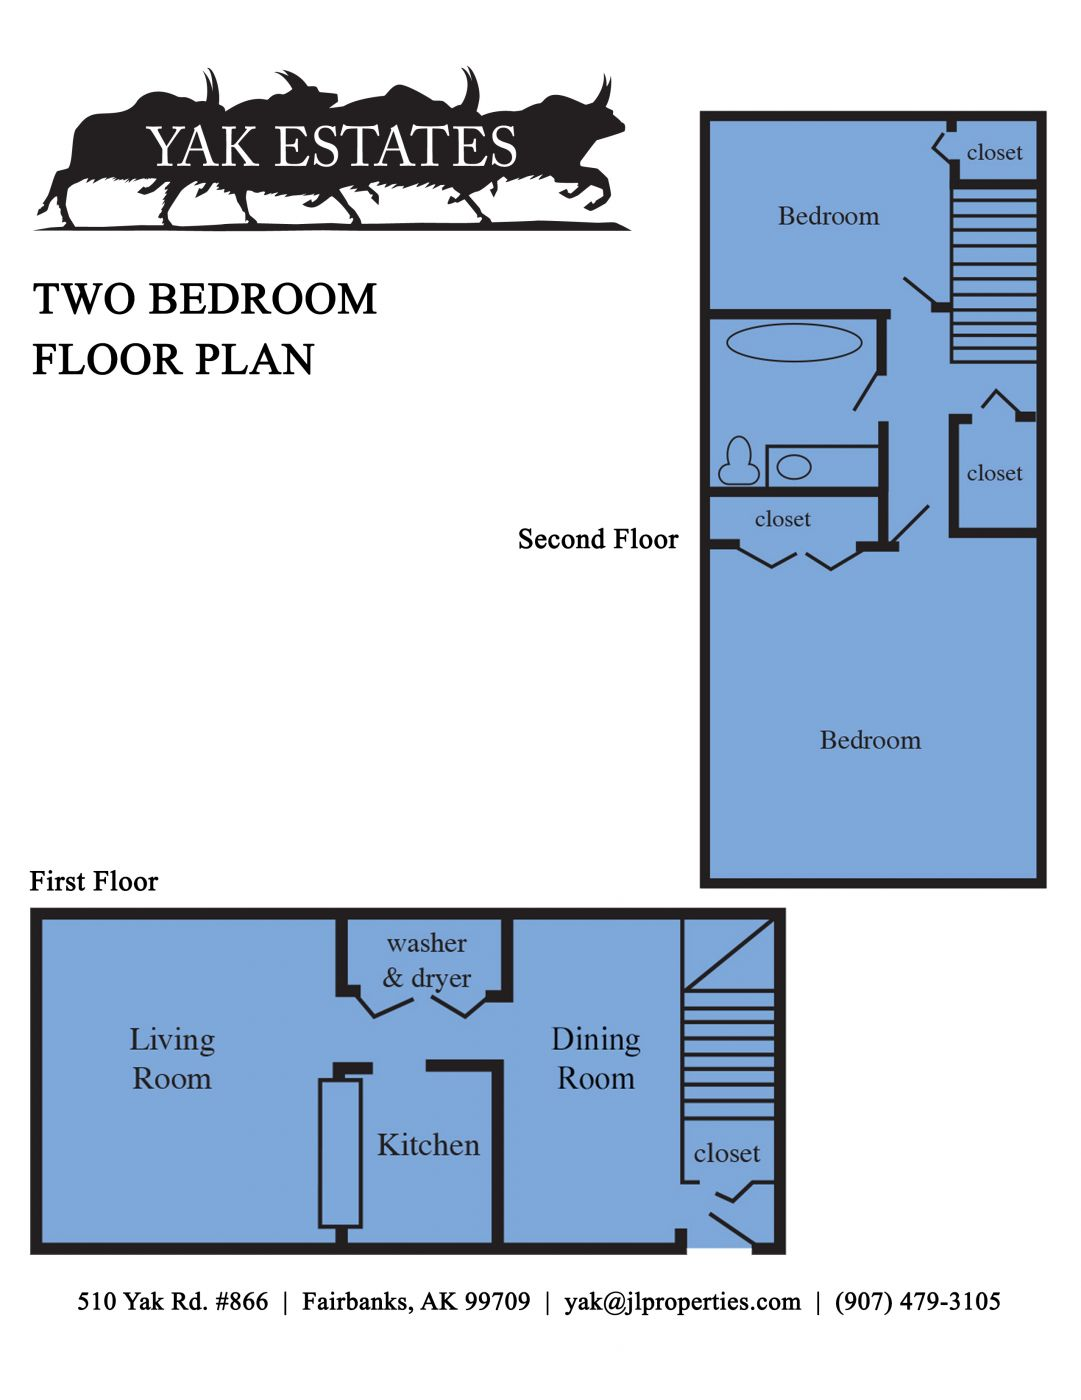 Fairbanks alaska apartments yak estates two bedroom for Floor plan websites